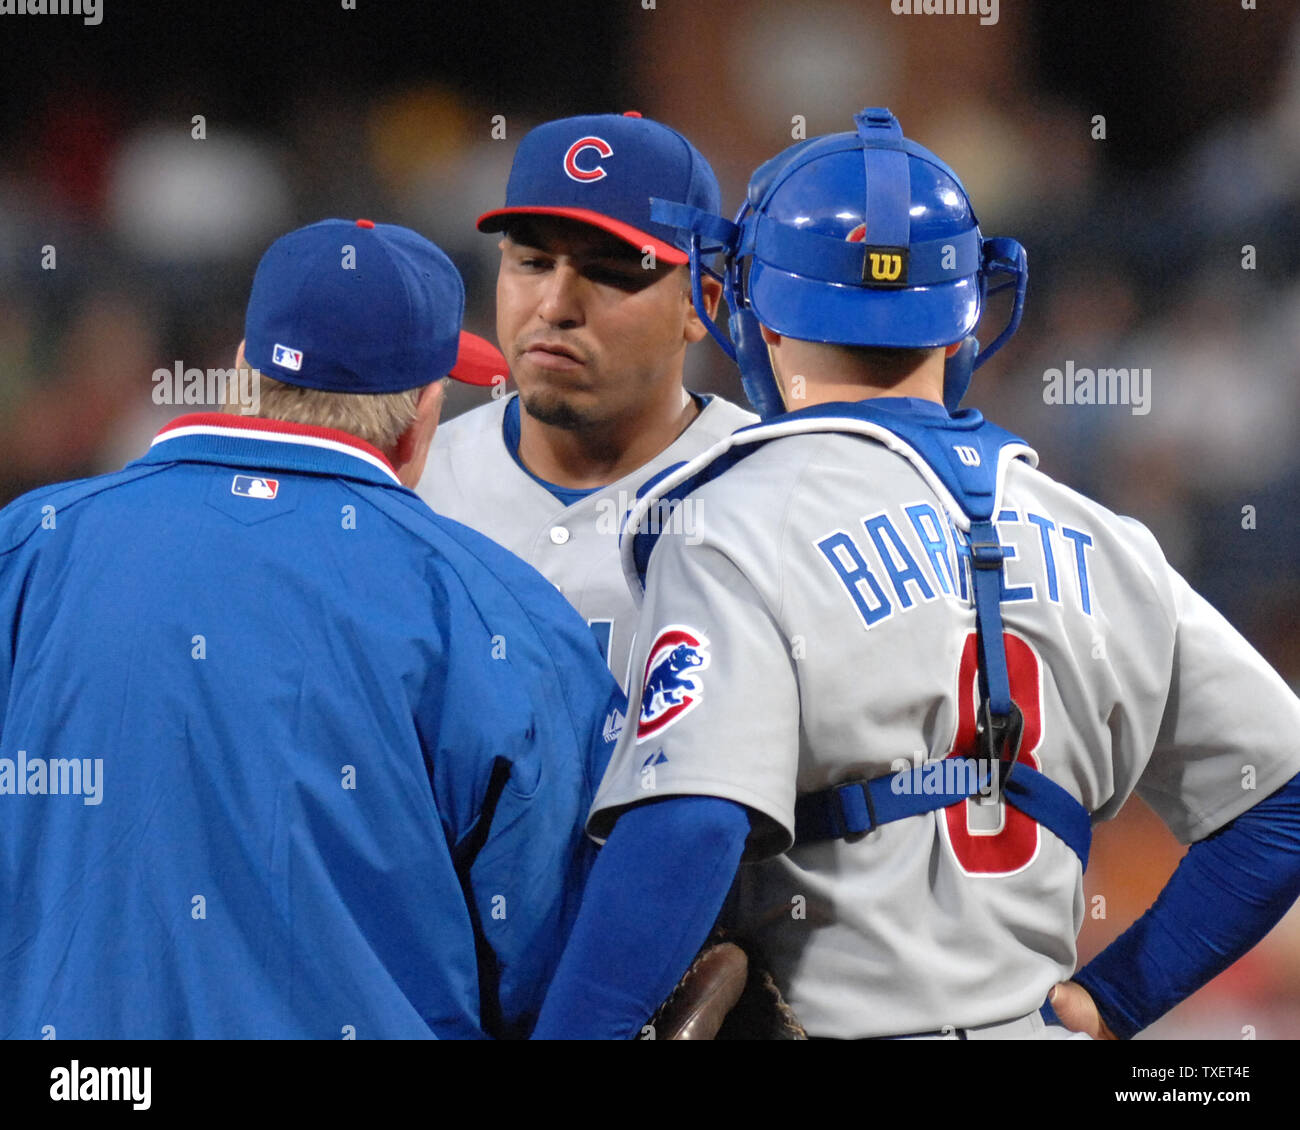 Chicago Cubs starting pitcher Carlos Zambrano (C) meets with Cubs pitching coach Larry Rothschild (L) and catcher Michael Barrett on the mound during play against the Atlanta Braves in the first inning at Turner Field in Atlanta, April 18, 2007. (UPI Photo/John Dickerson) - Stock Image